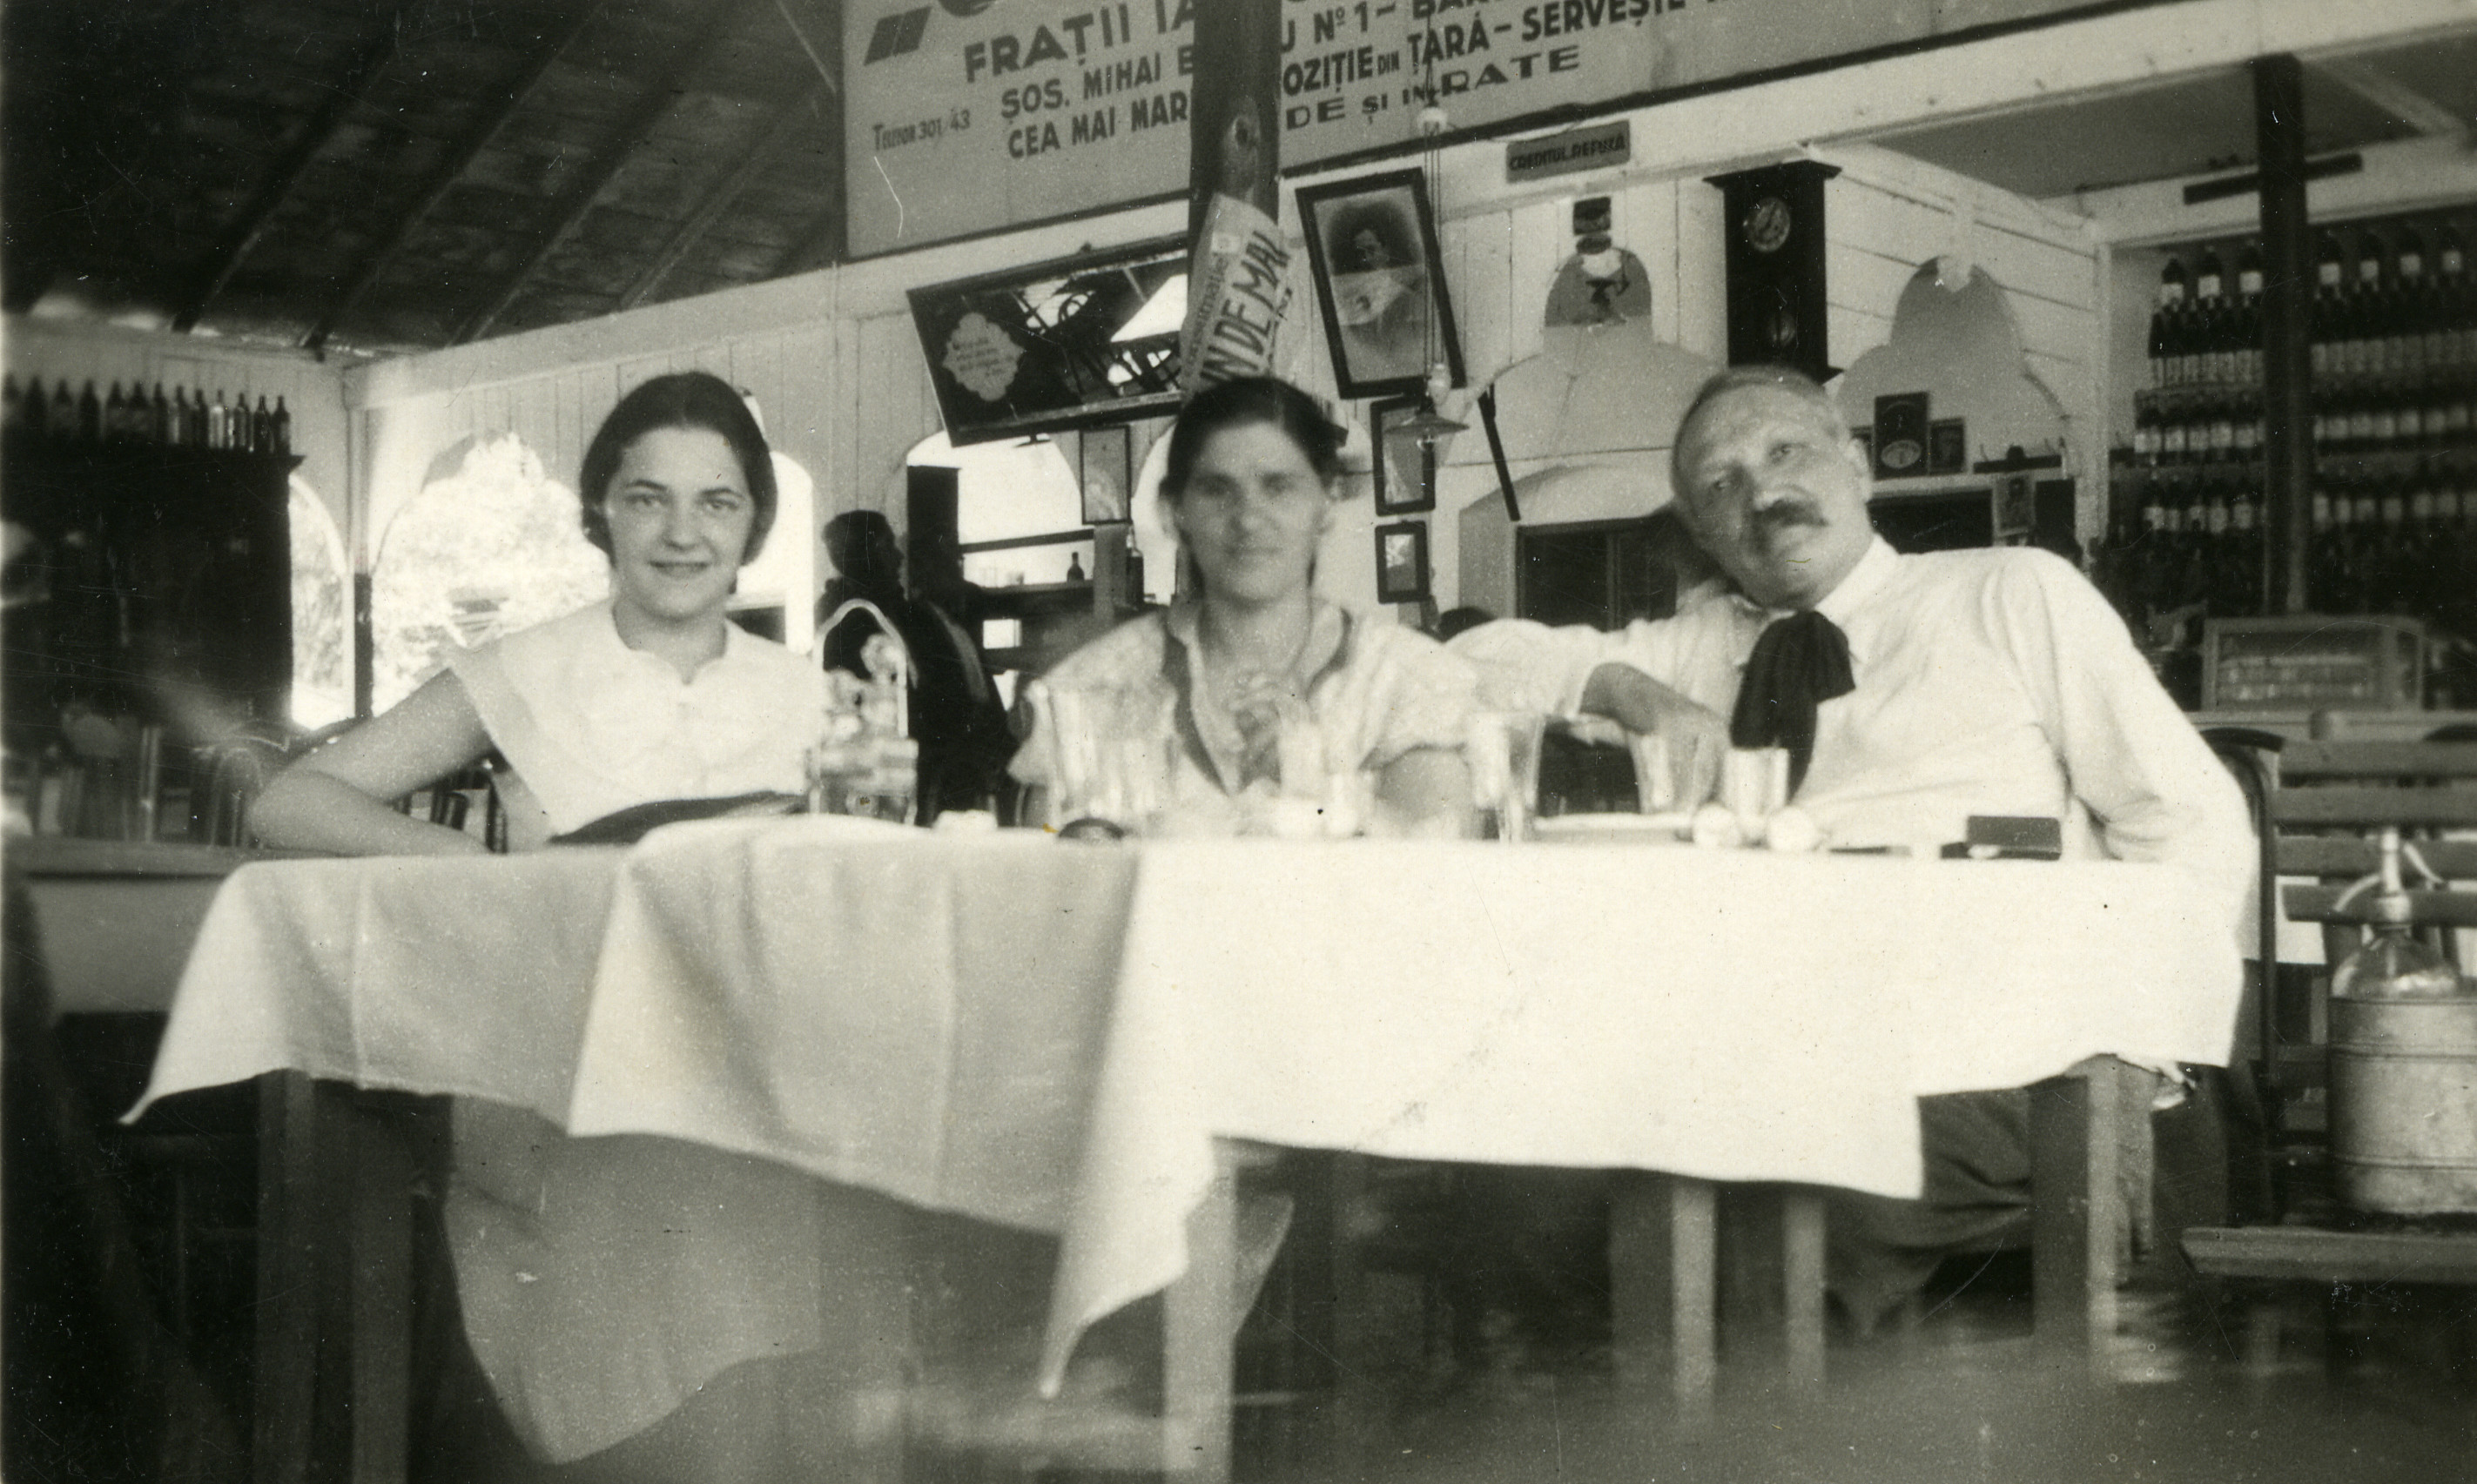 Romanian family members meet to discuss socialist party matters in a cafe.  Pictured are Charlotte Josef (left), Dr. Leon Gelehrter (right), and his wife (center).